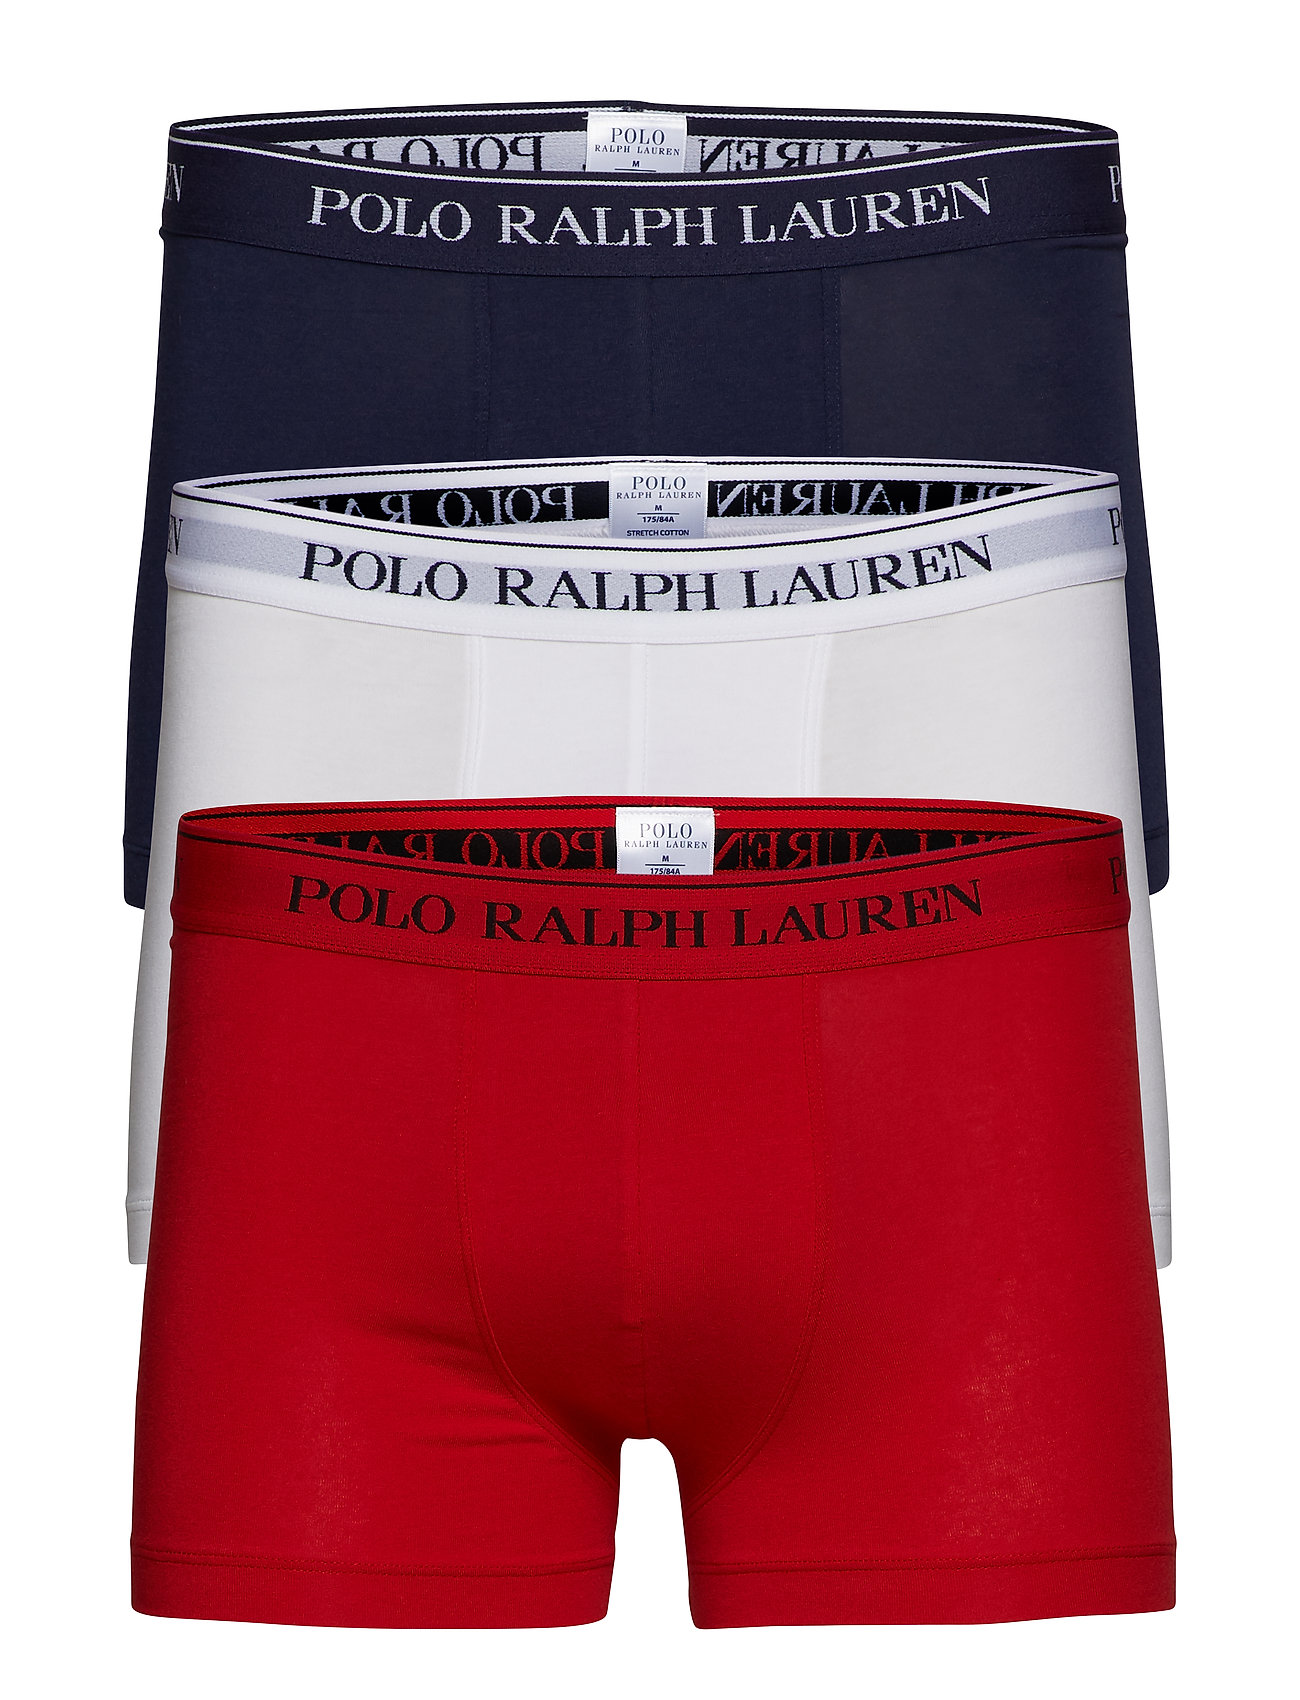 Polo Ralph Lauren Underwear 3 PACKS POUCH TRUNKS - RL2000RED/WHITE/C